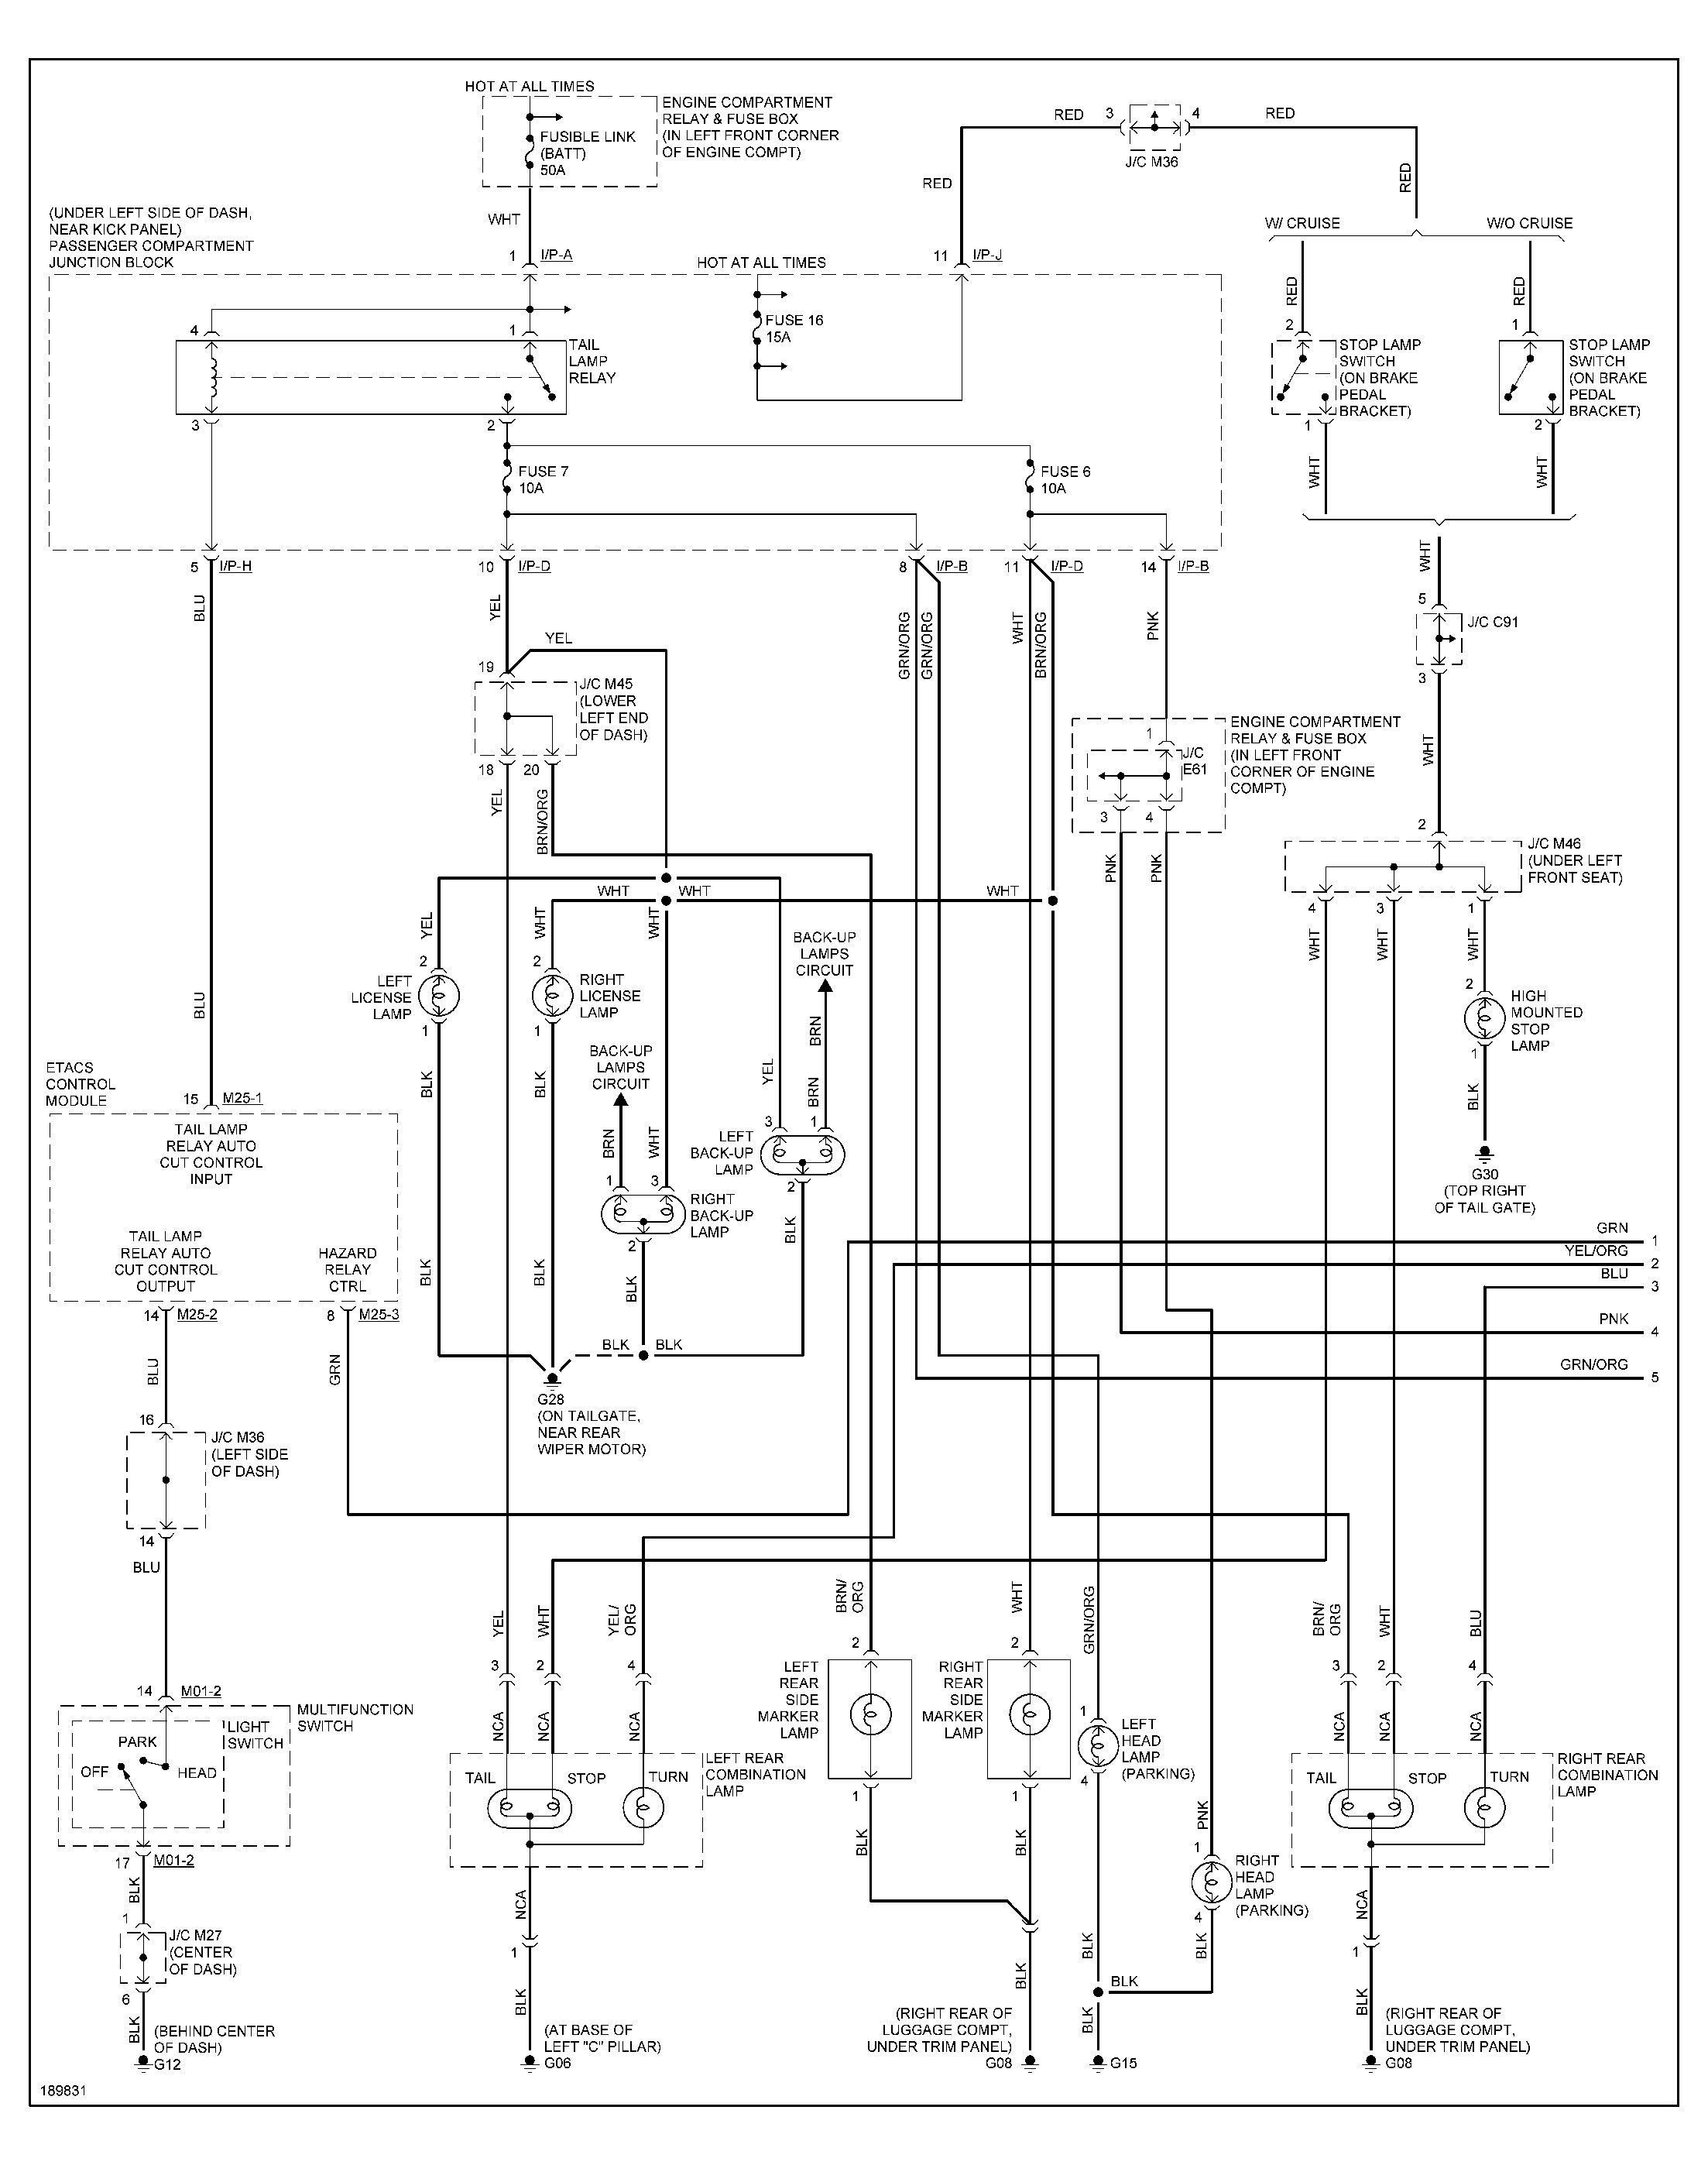 Hyundai Getz Radio Wiring Diagram Library. Hyundai Tucson Engine Wiring Diagram Portal U2022 Rh Graphiko Co. Wiring. Free Auto Wiring Diagram For Hyndai Tucson At Scoala.co